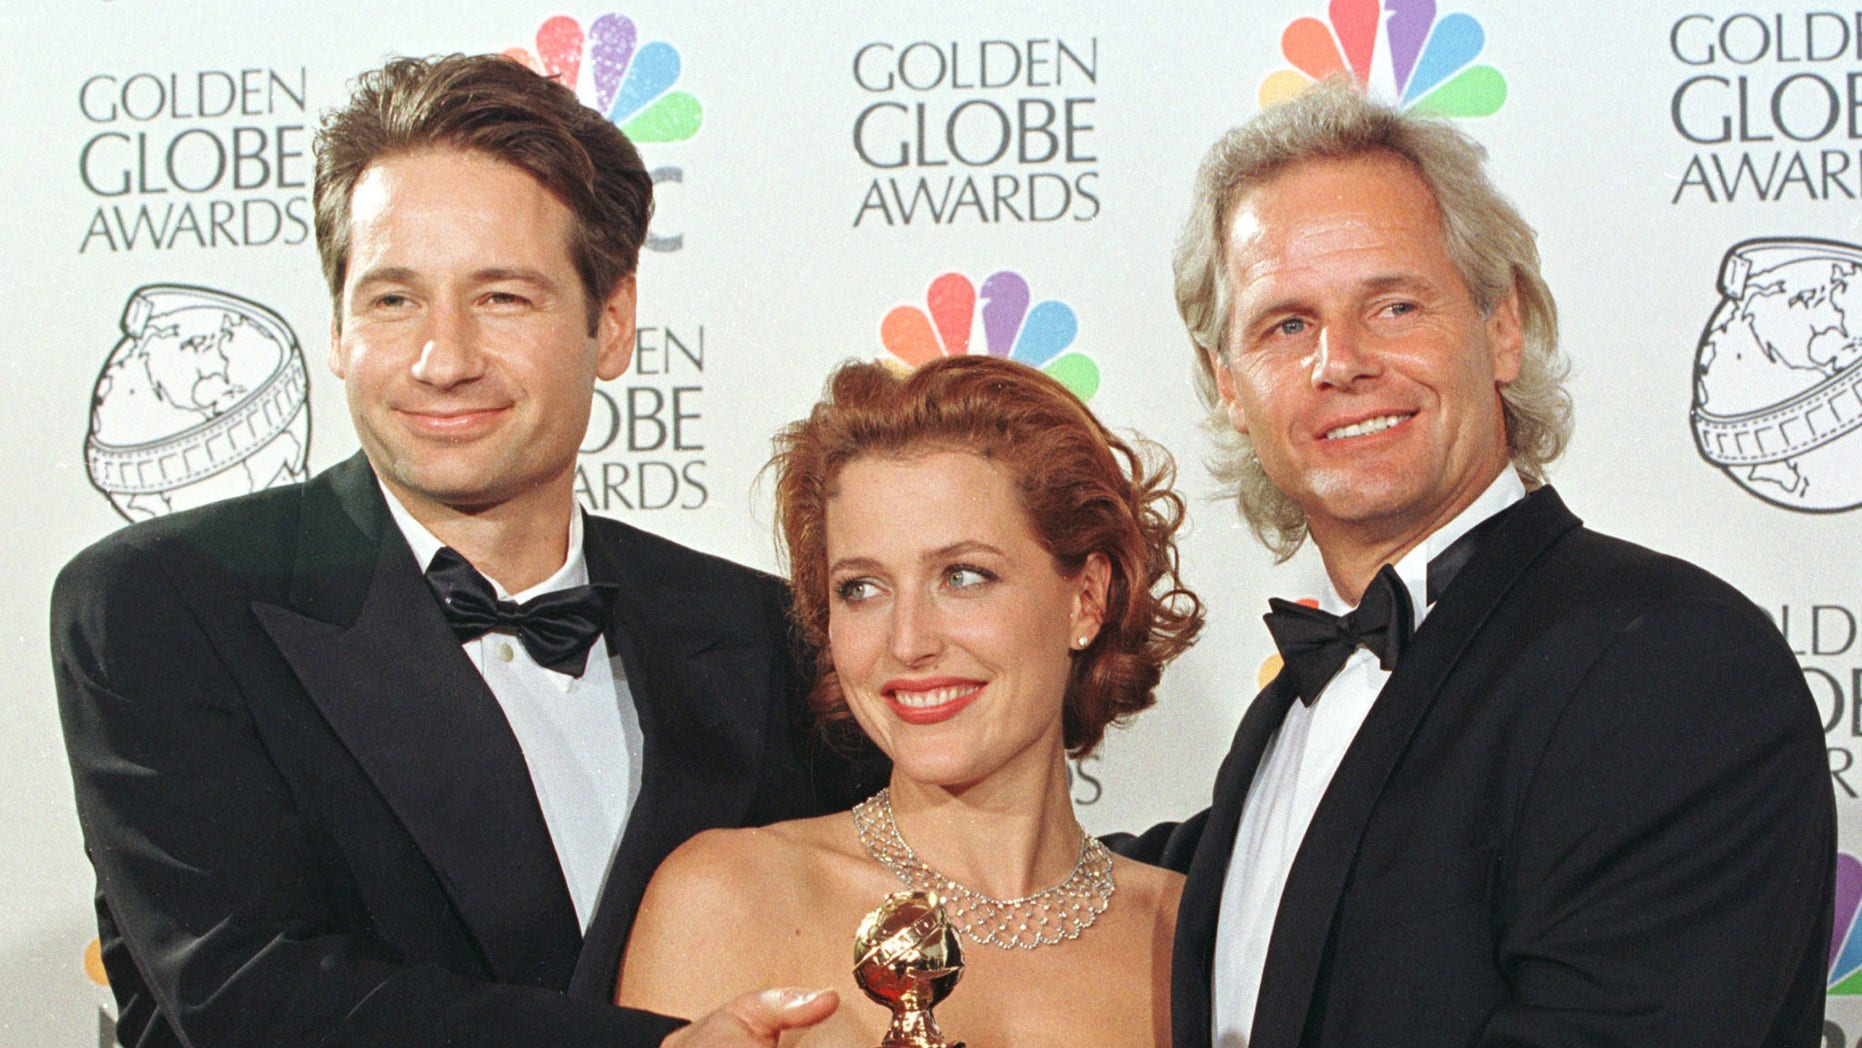 Stars David Duchovny (L) and Gillian Anderson (C) pose with X-Files creator Chris Carter, after the show was named Best Television Drama at the 55th annual Golden Globe Awards in Beverly Hills, January 18. The Golden Globe Awards, sponsored by the Hollywood Foreign Press Association, honor excellence in film and television. - RTXIMBF